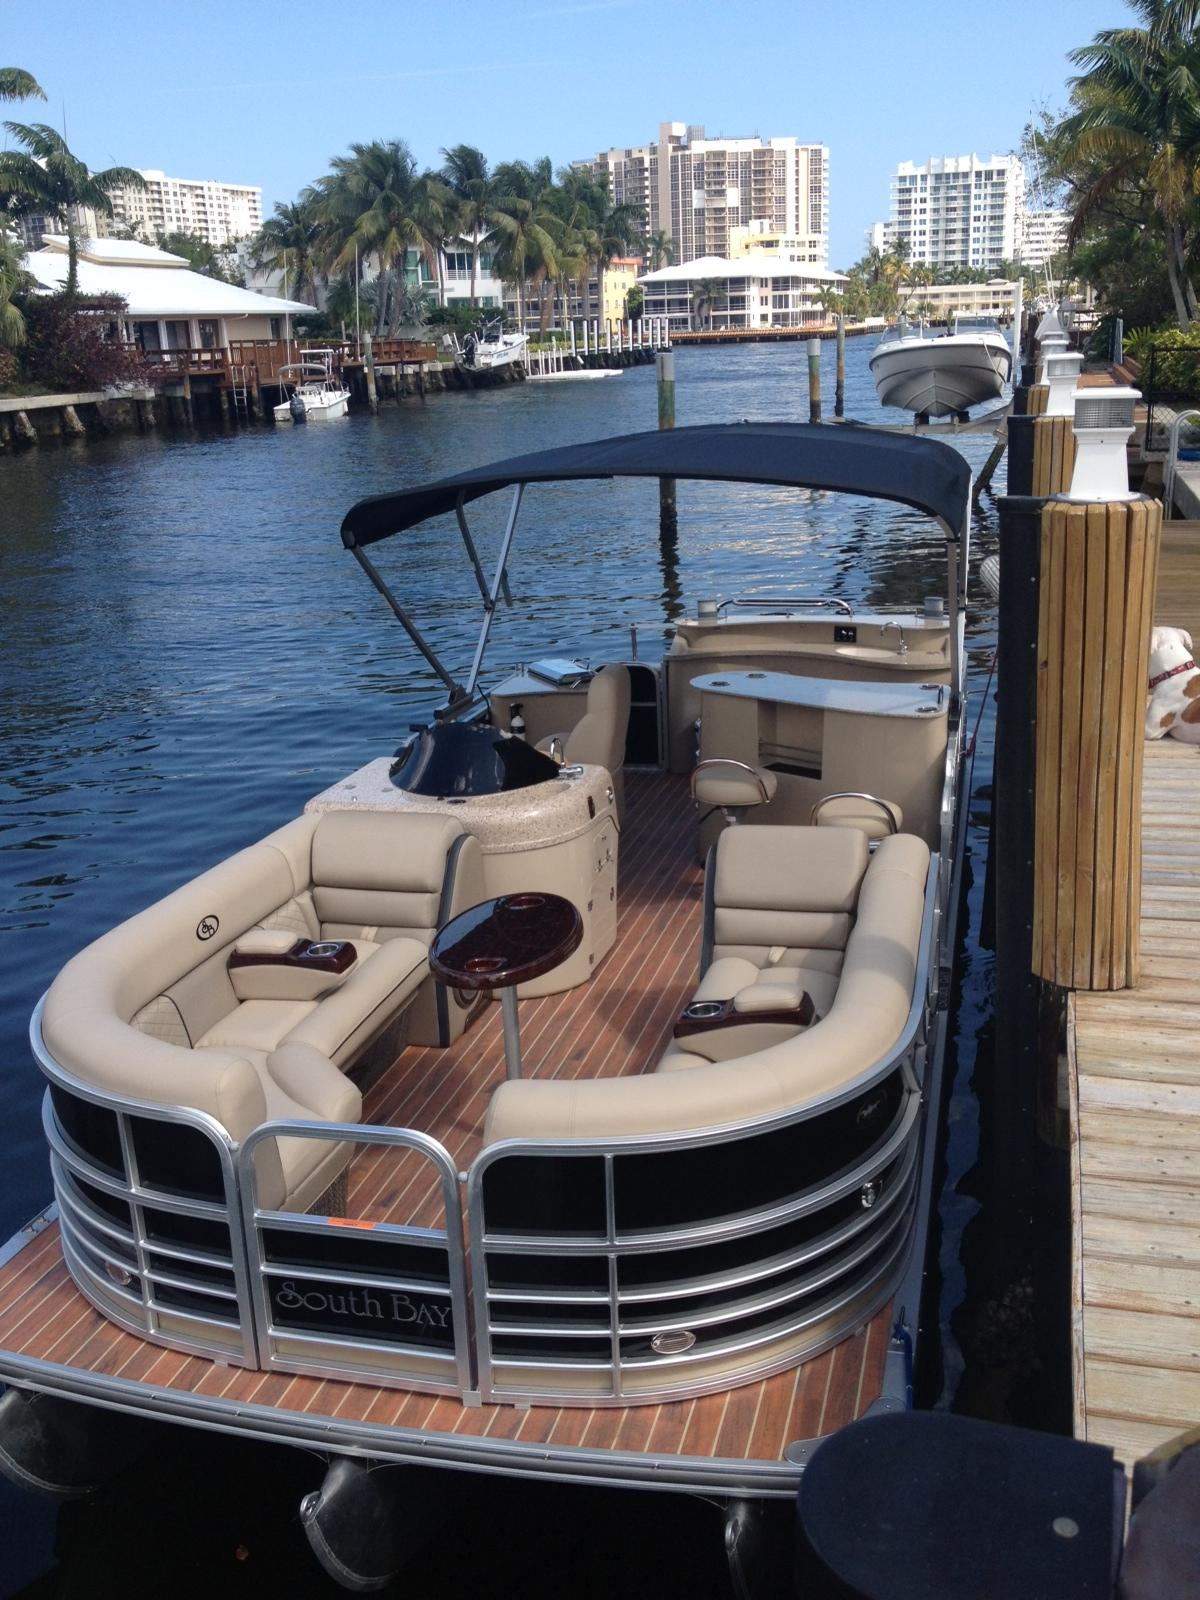 24 ft 2013 south bay 724 e dlx tt13